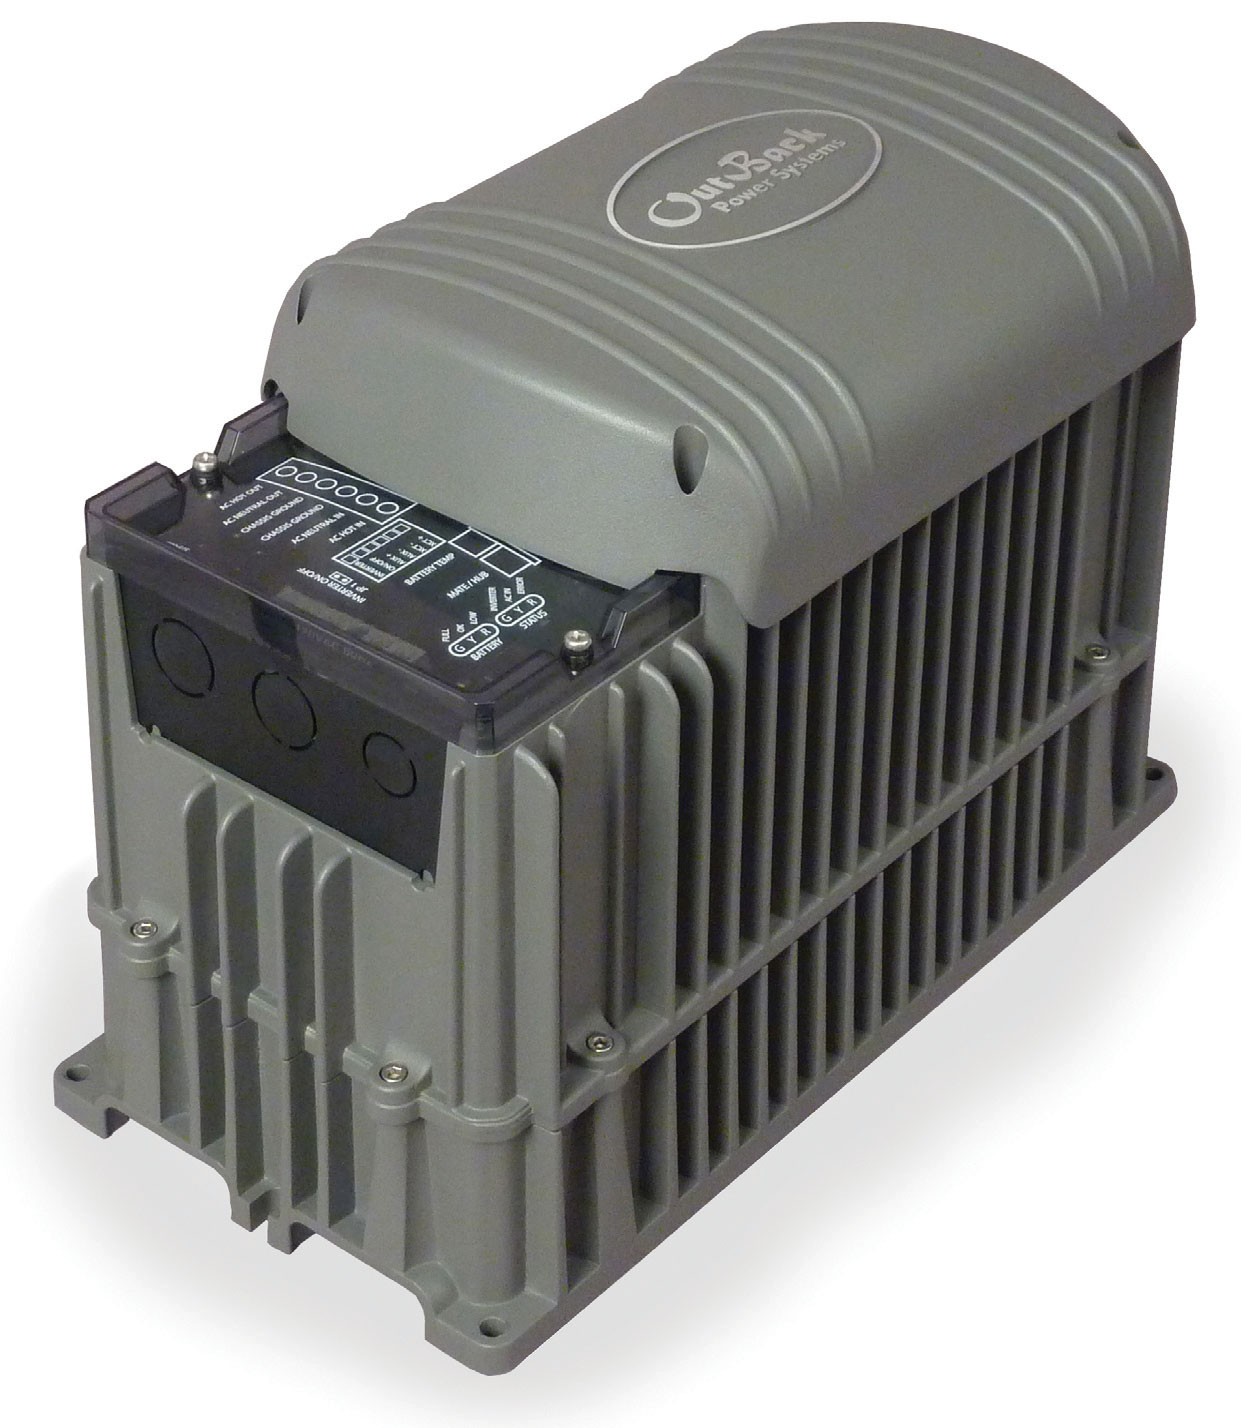 OUTBACK, GVFX3524, BATTERY INVERTER, GRID TIE, 3.5KW 24VDC, 120VAC 60HZ